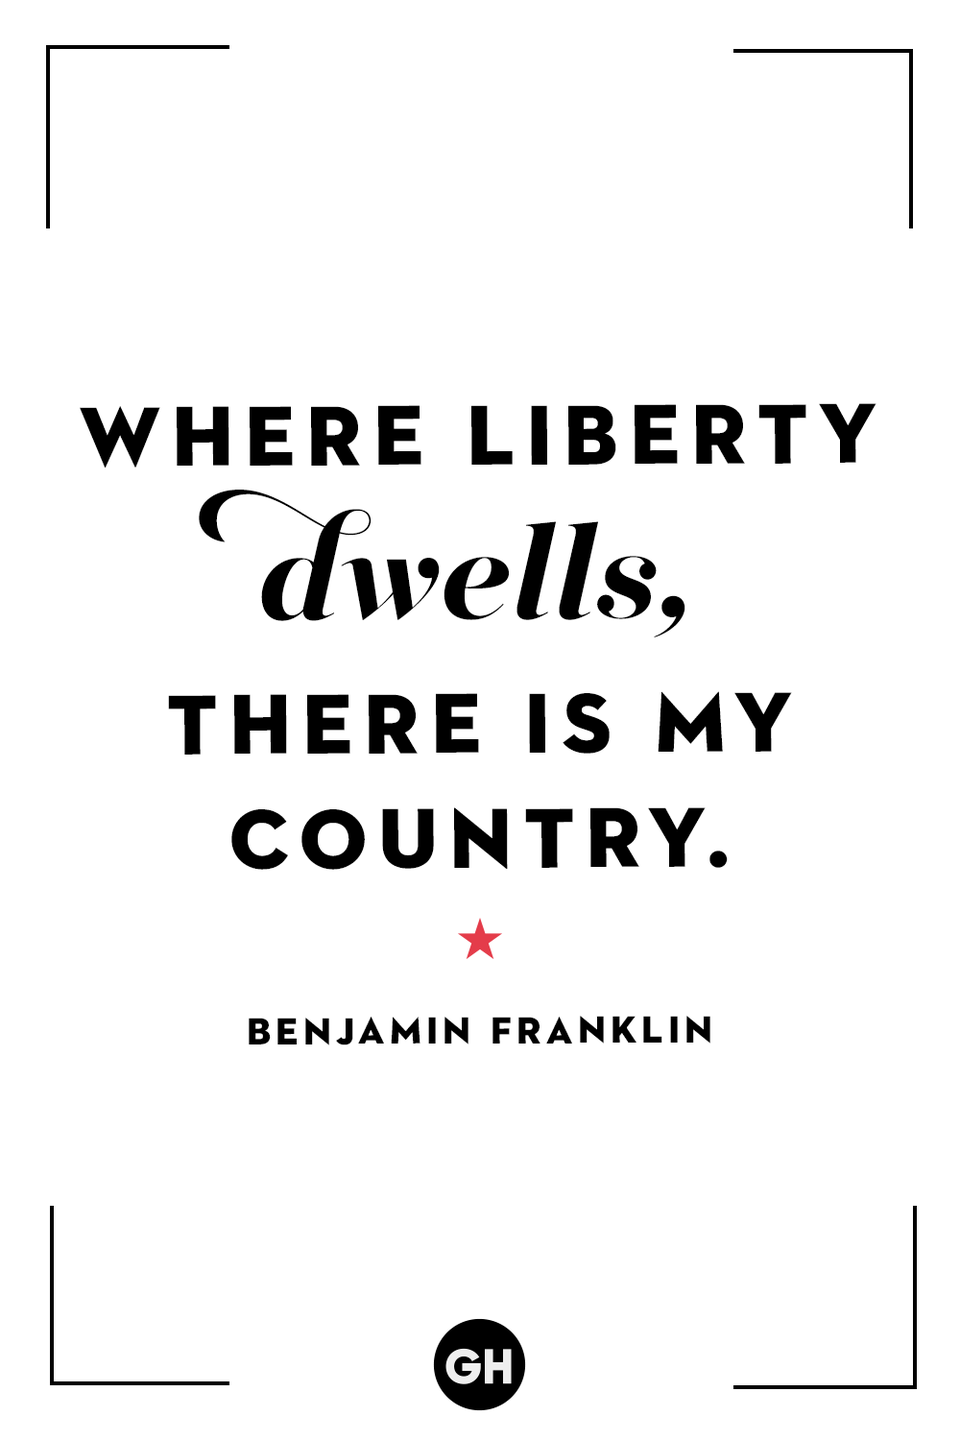 <p>Where liberty dwells, there is my country.</p>